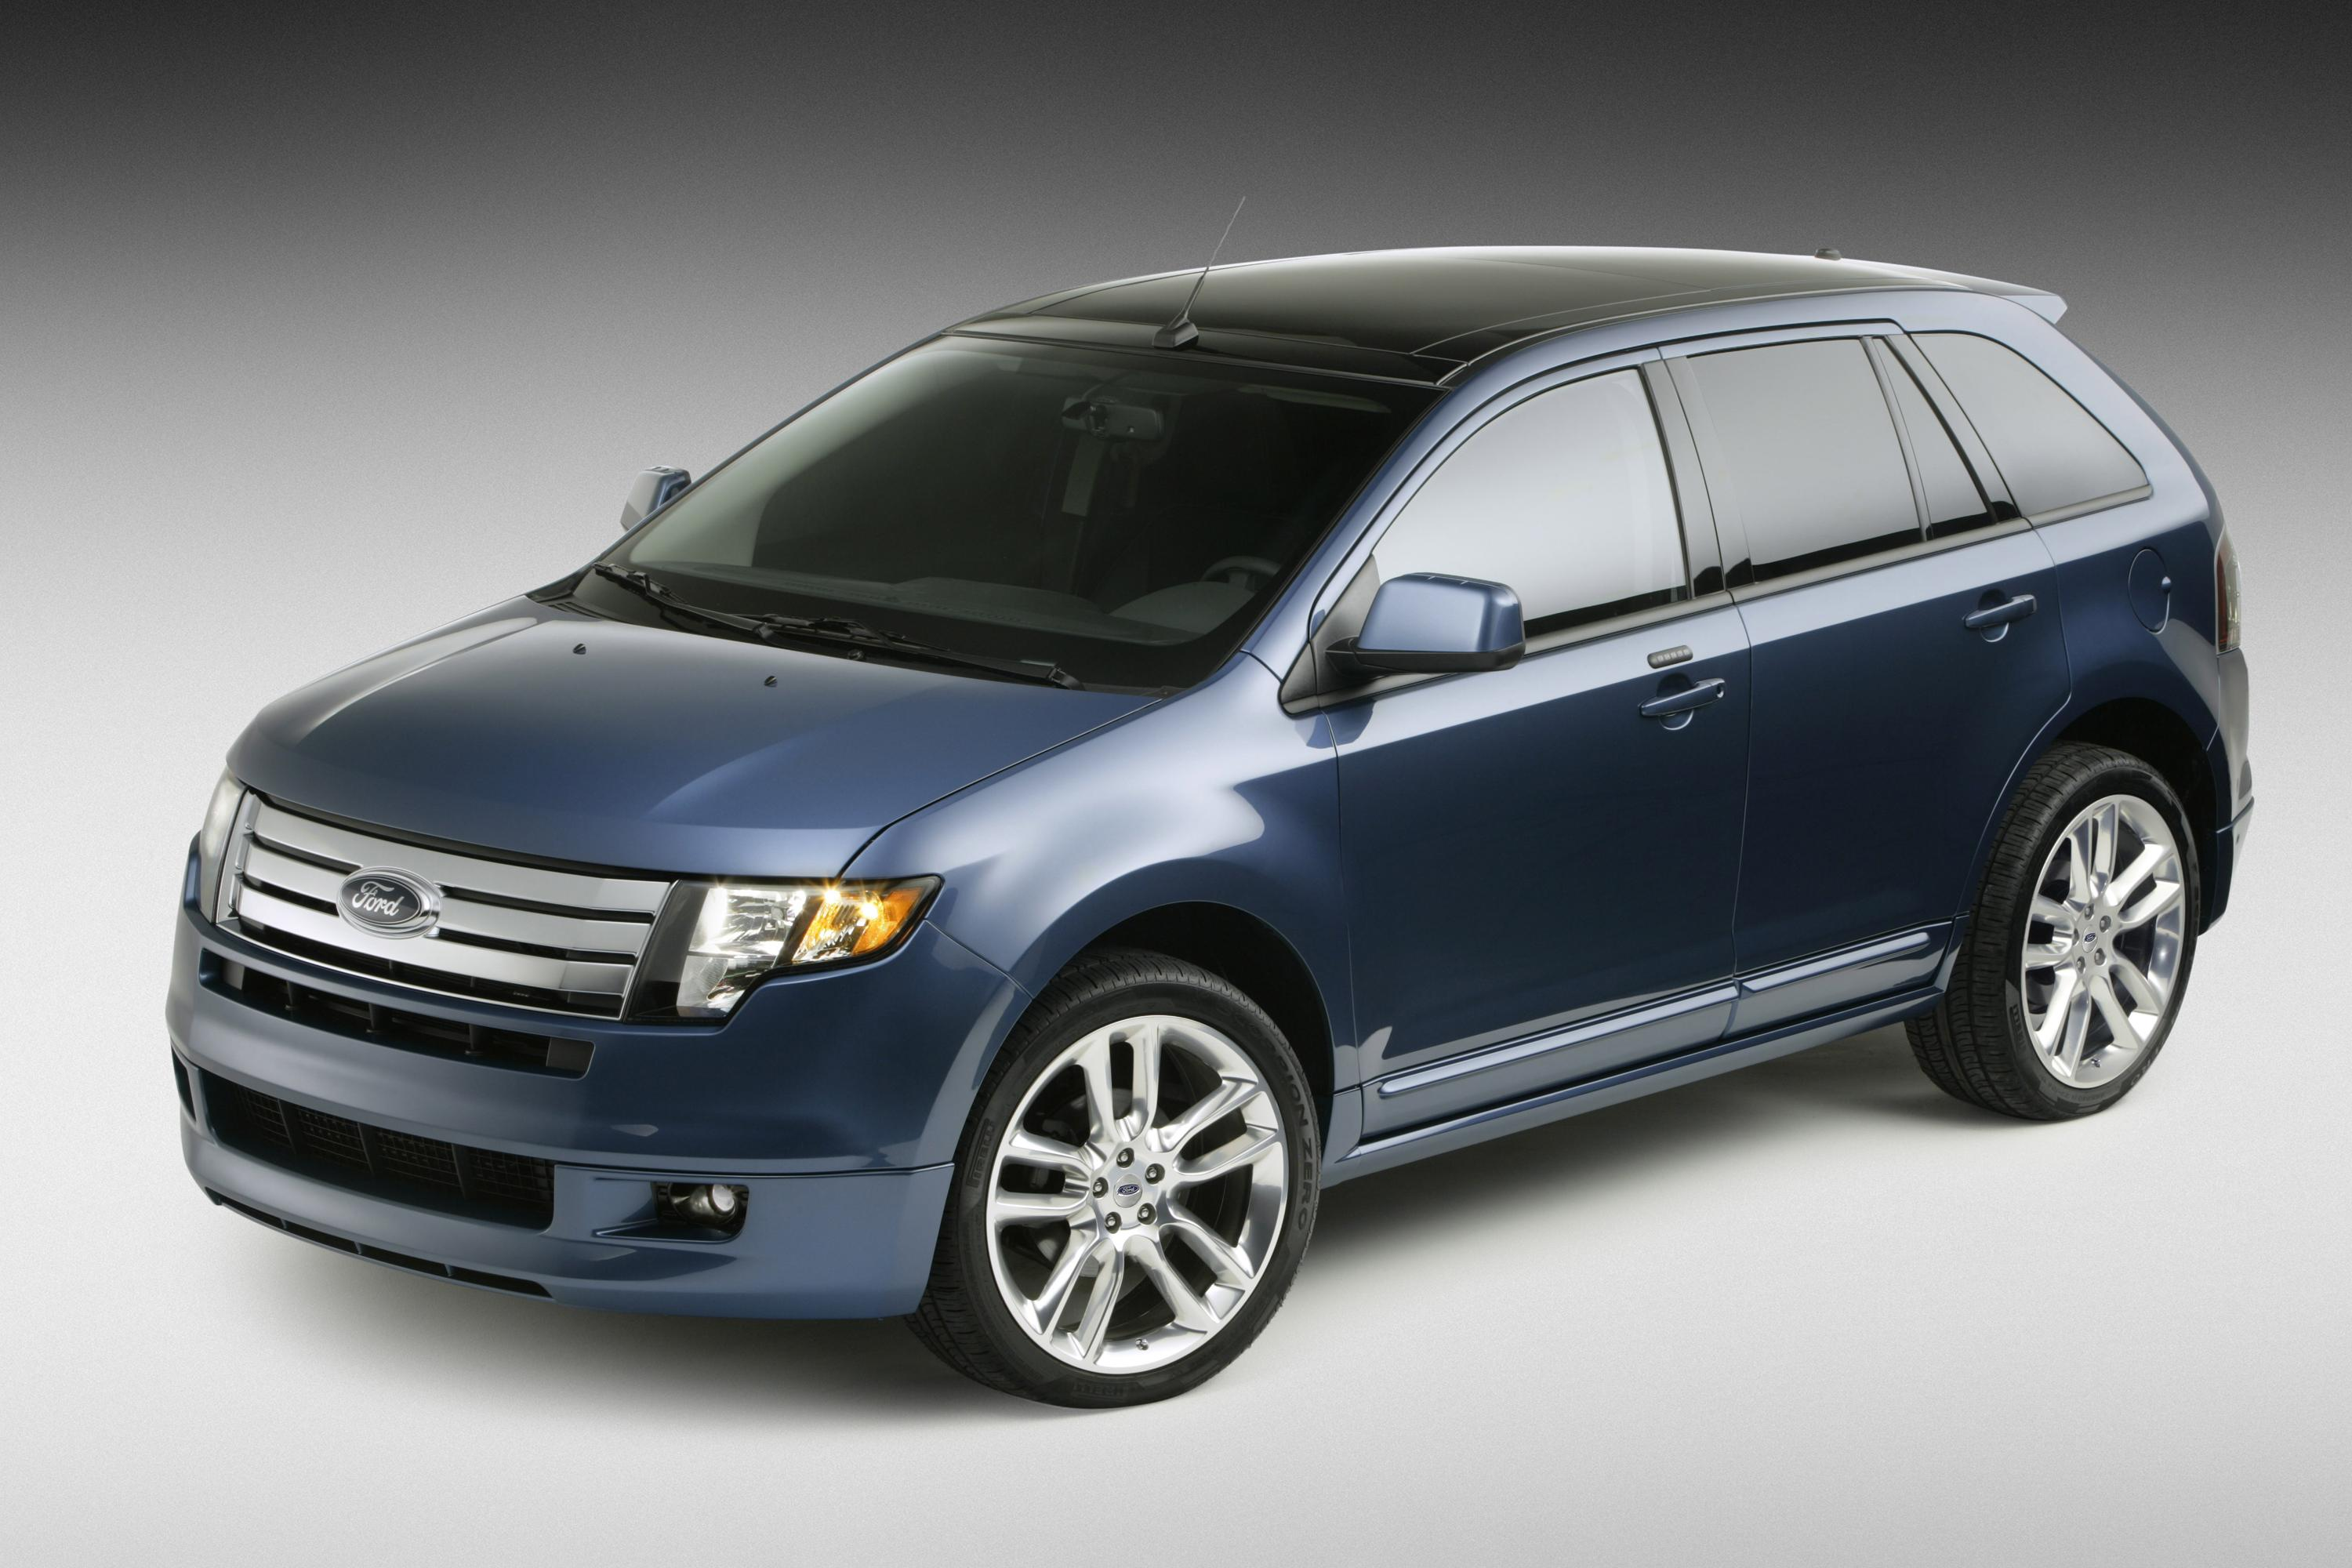 22 Inch Tires >> 2009 Ford Edge Sport | Top Speed